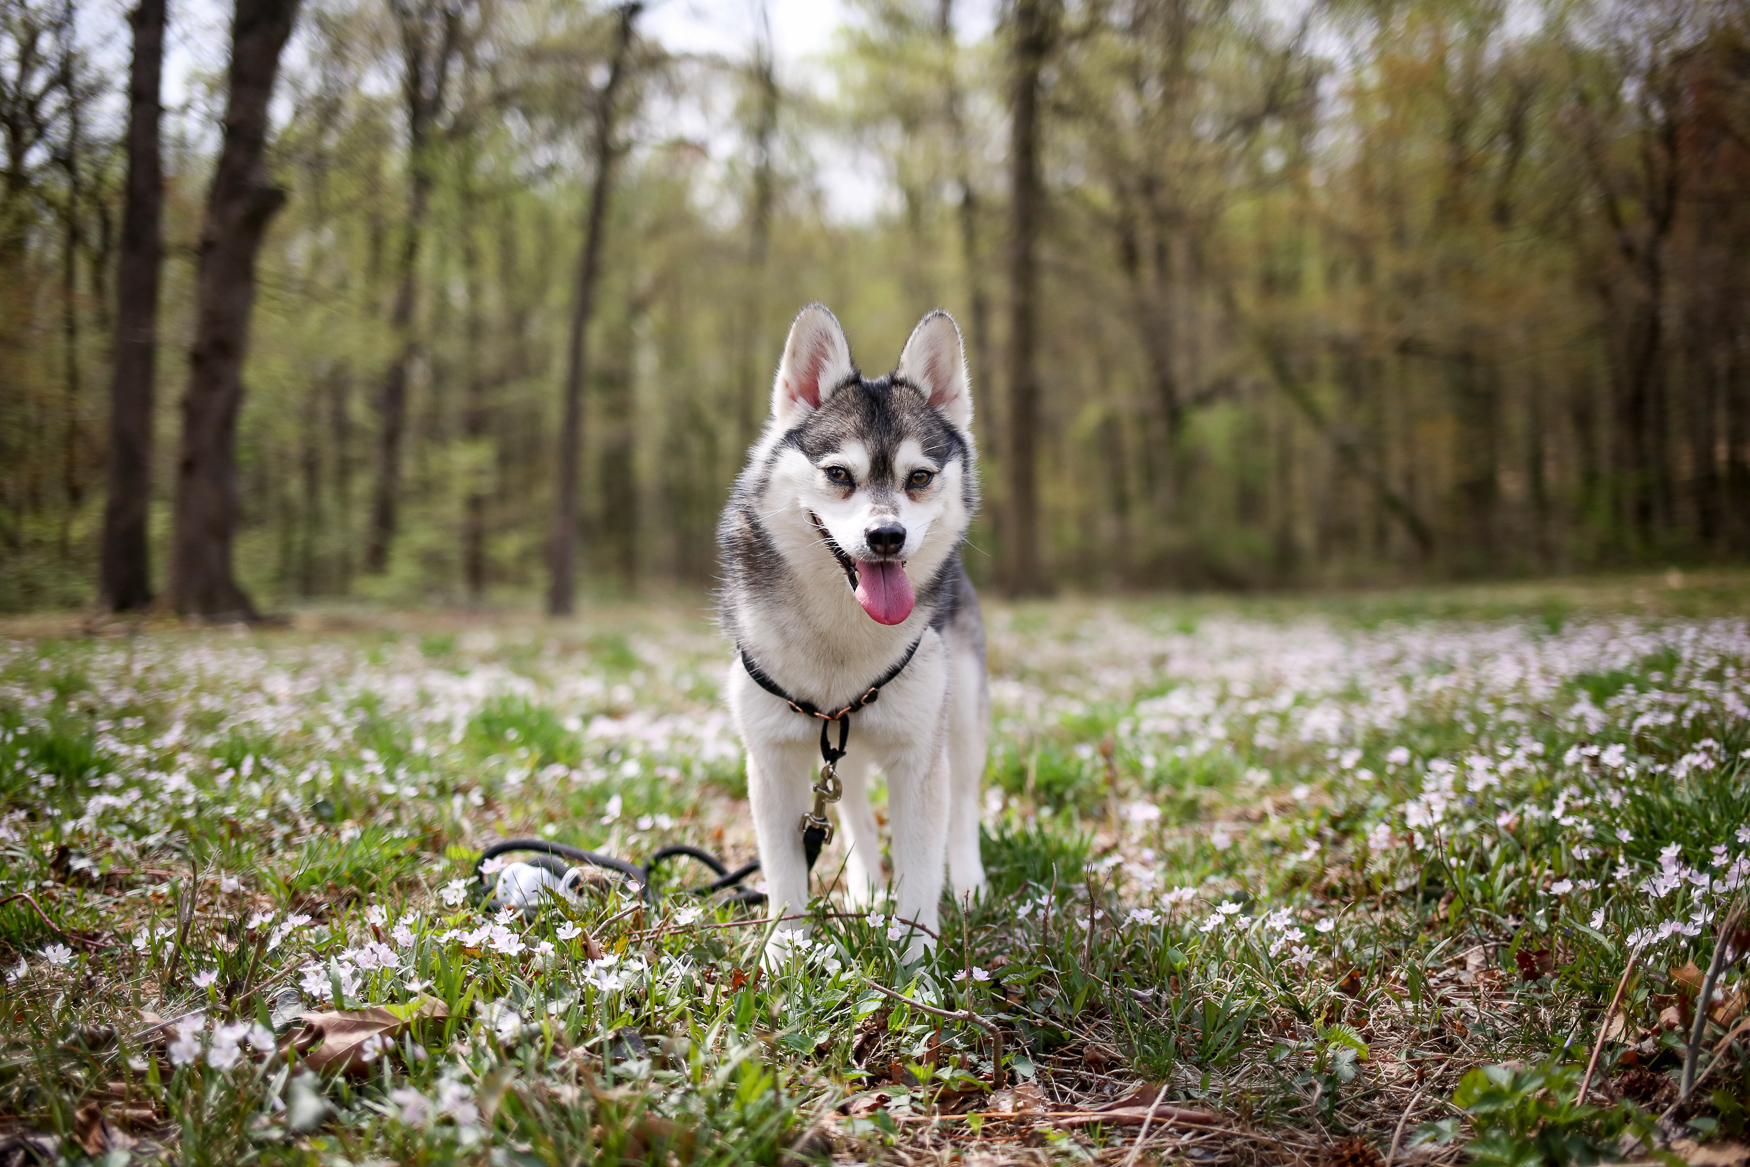 "Meet Mercer, a six year old Alaskan Klee Kai, who came to live with his mom in Del Ray/Old Town at 8 weeks old. He is a true mama's boy and always hopes to be within 3 feet of mom at all times. Mercer also loves a really ratty, half-deflated kids' soccer ball that he can pick up and carry around; he loves any opportunity to play fetch with that ball. He also truly enjoys a good long walk and he has trekked all over trails in D.C., Maryland and Virginia. Because he just wants to be with mom all the time, he's a very good traveler and will hang out in his plane carrier without making a peep. He's been to Texas, California, Florida and, most importantly, Washington State to visit mom's family. Mercer knows several tricks, but one of his favorites is to ""sit pretty"" where he balances on his haunches and uses his adorable begging face to get some treats! If you're interested in having your pup featured, drop us a line at aandrade@dcrefined.com, but we do have quite the waiting list right now so we appreciate your patience! (Image: Amanda Andrade-Rhoades/DC Refined)"